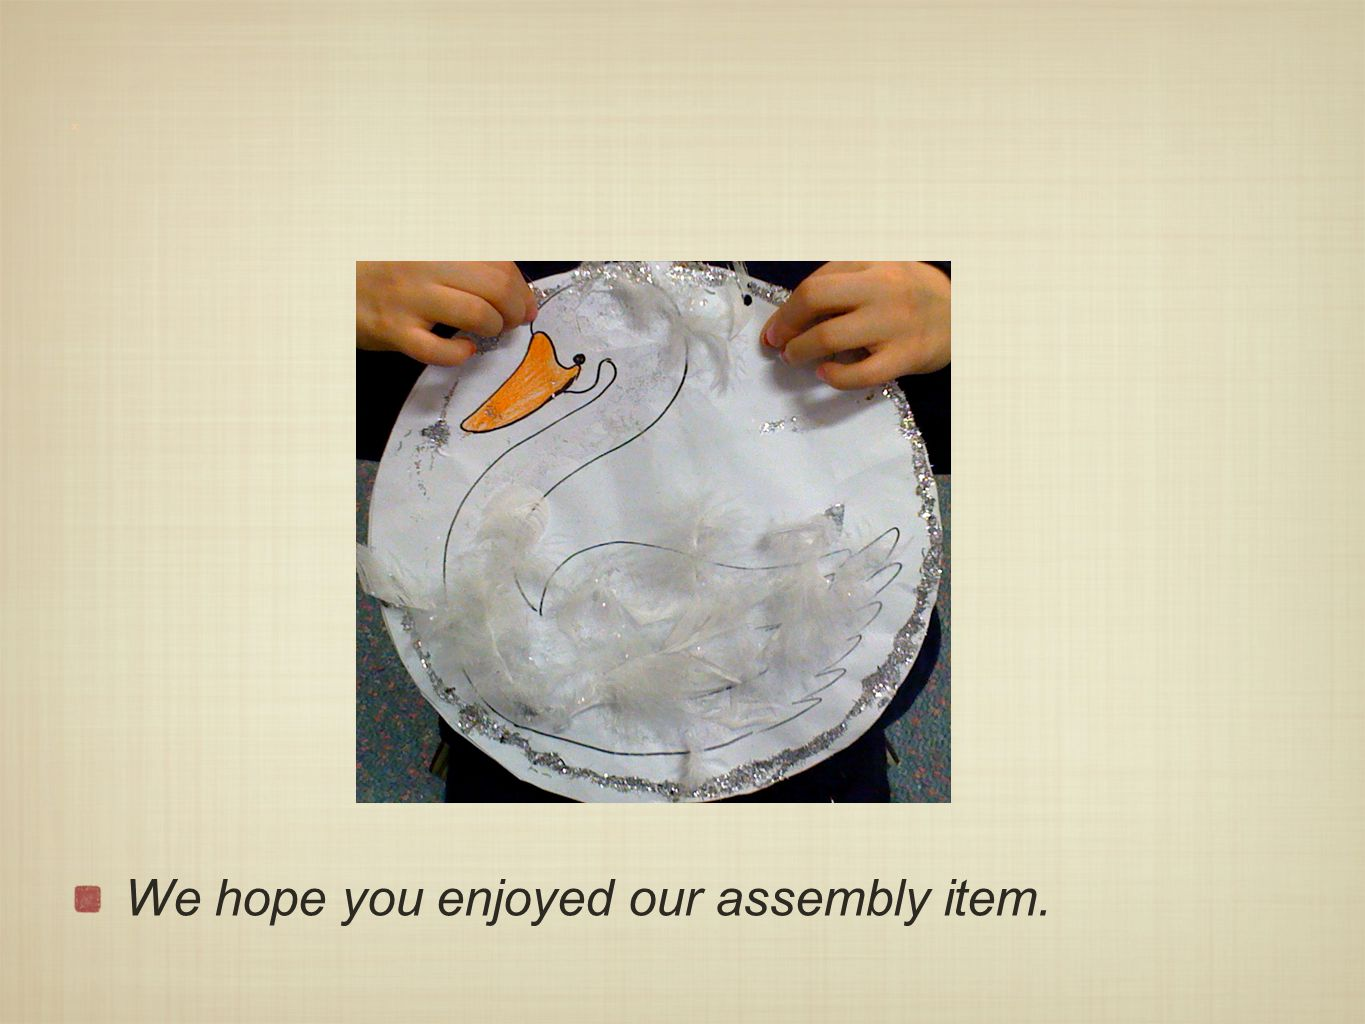 x We hope you enjoyed our assembly item.